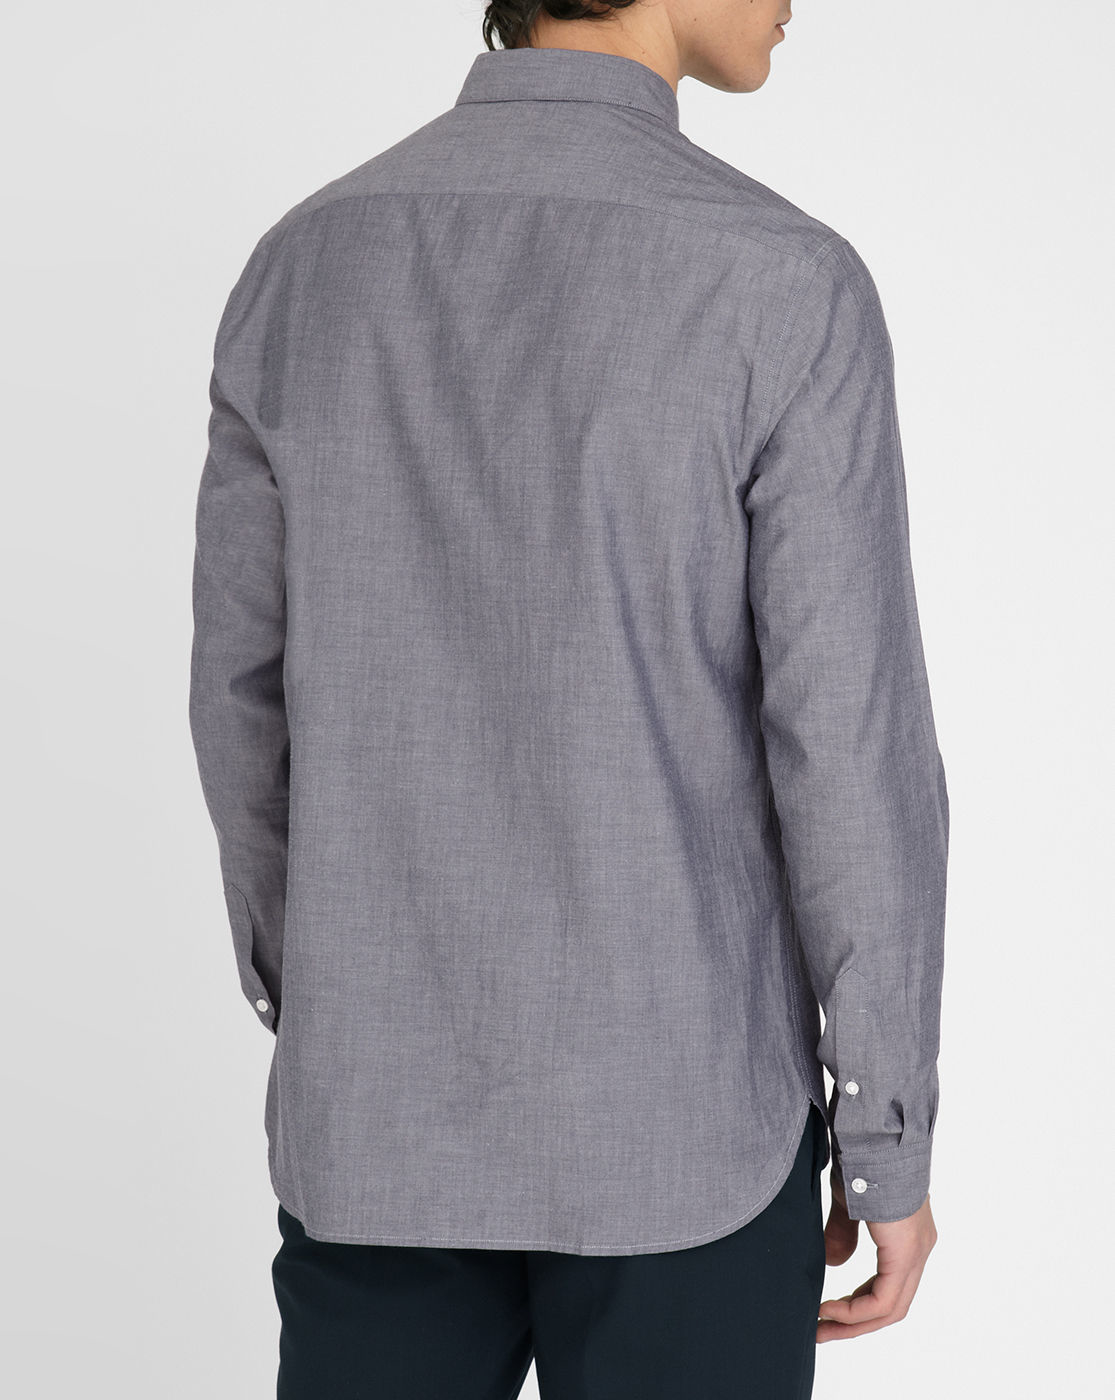 Amare grey blue chambray cotton shirt straight for Small collar dress shirt